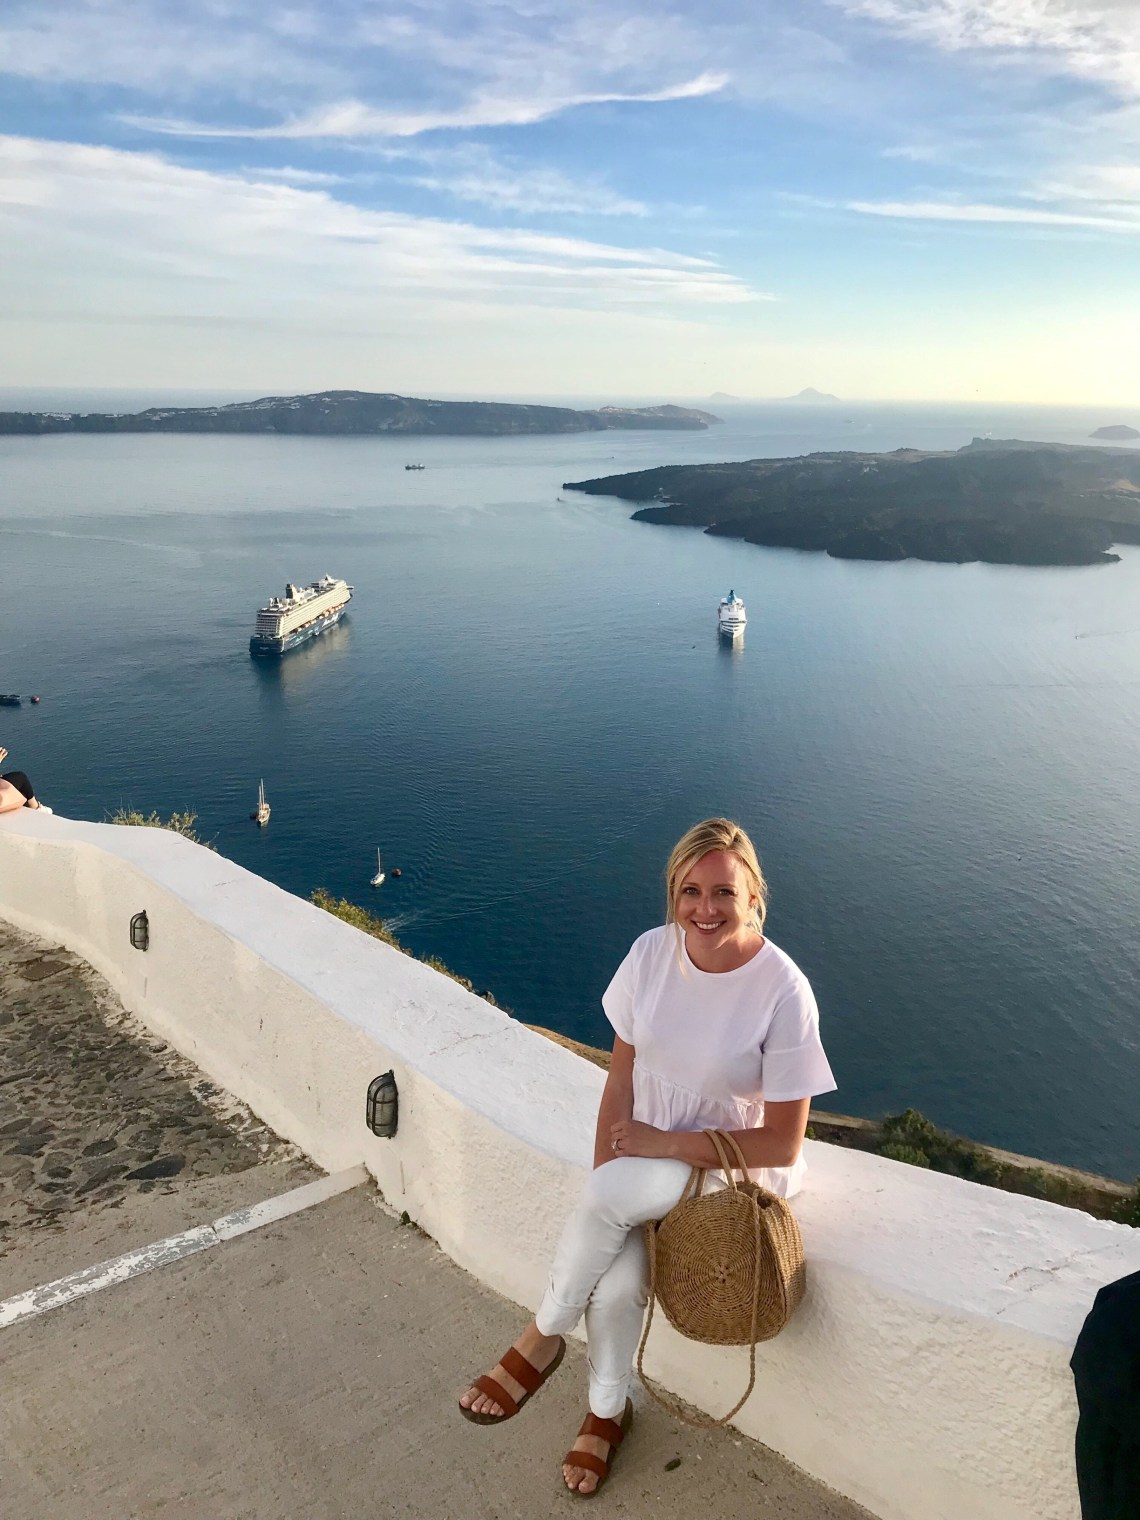 Santorini Greece_14-05-2019-22-25-56